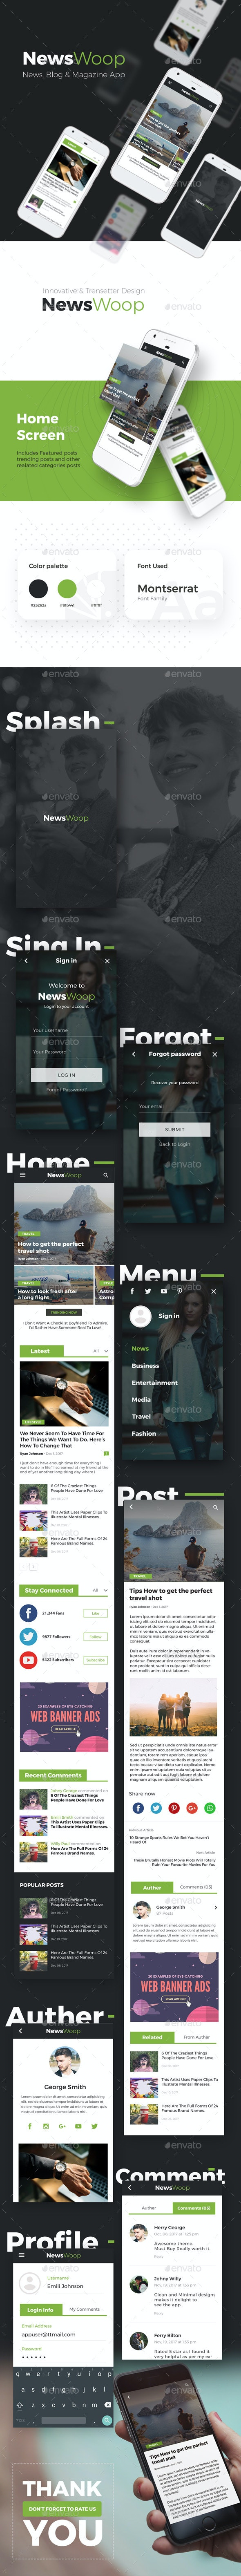 News, Magazines, Blogs Android + iOS App UI | NewsWoop - User Interfaces Web Elements